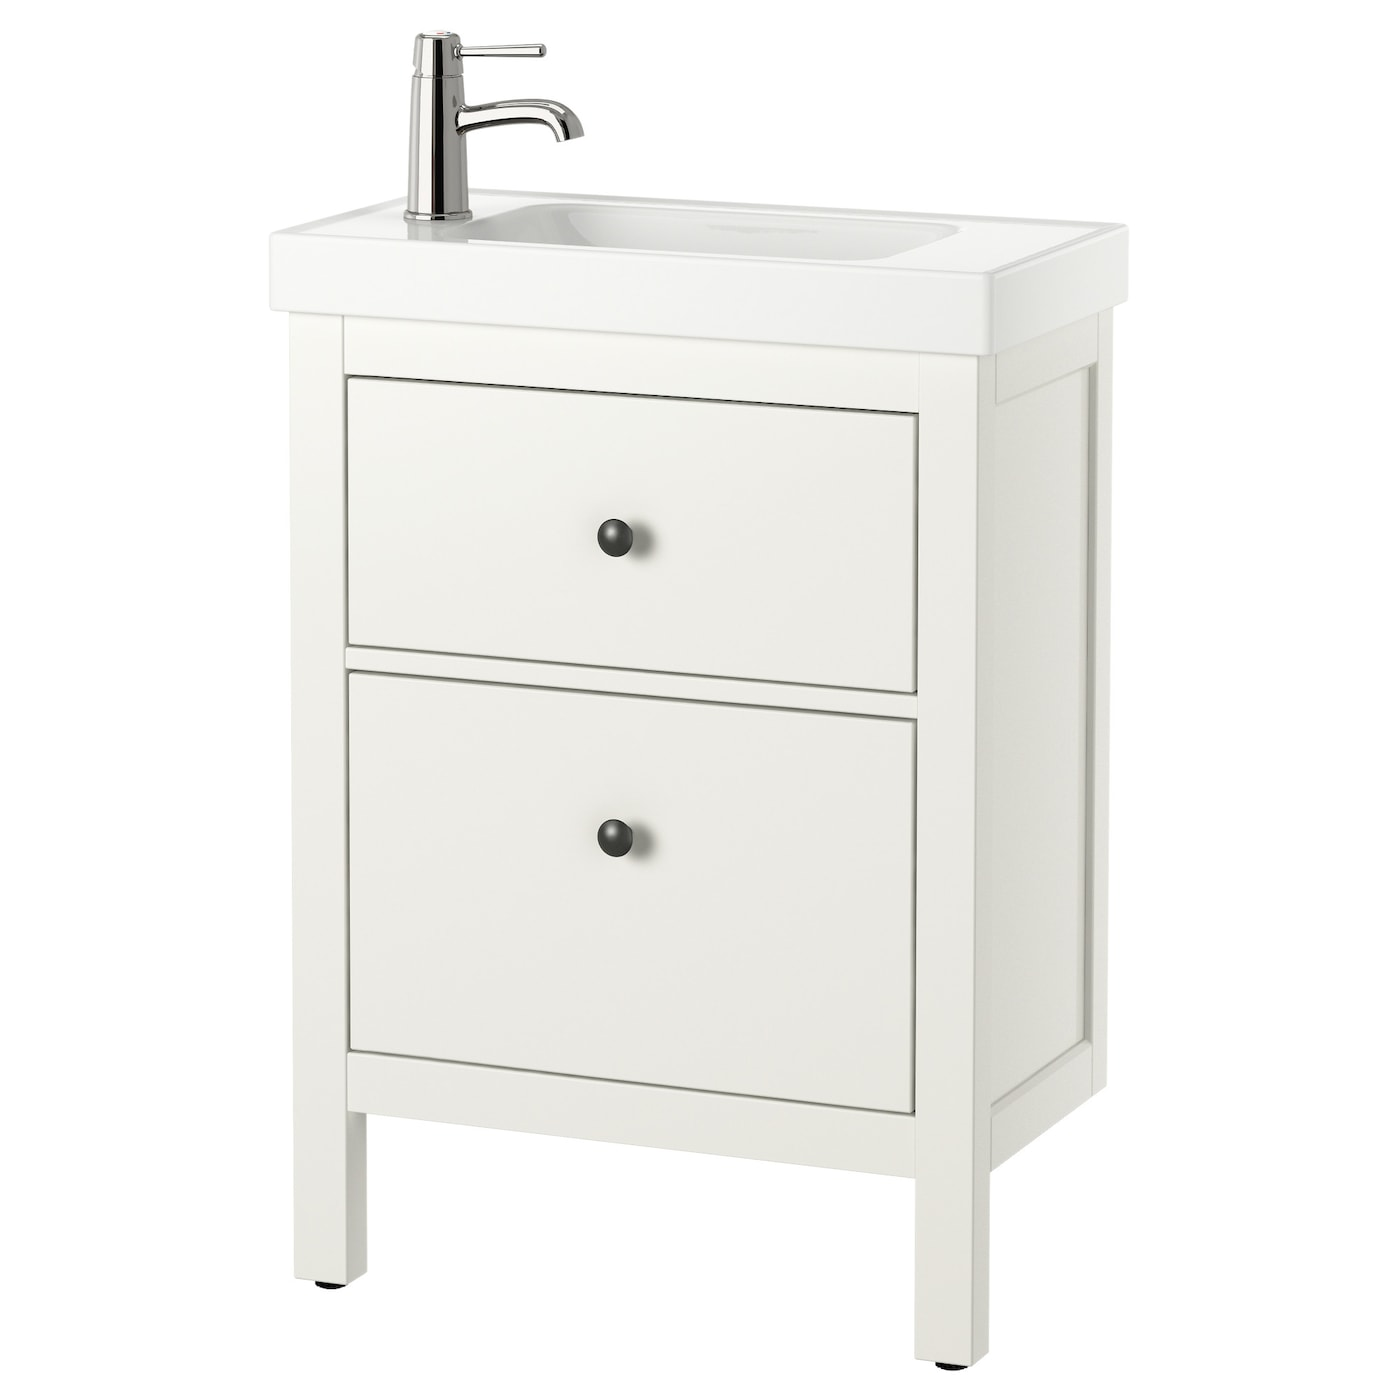 hemnes hagaviken meuble lavabo 2tir blanc 63 x 34 x 90 cm. Black Bedroom Furniture Sets. Home Design Ideas